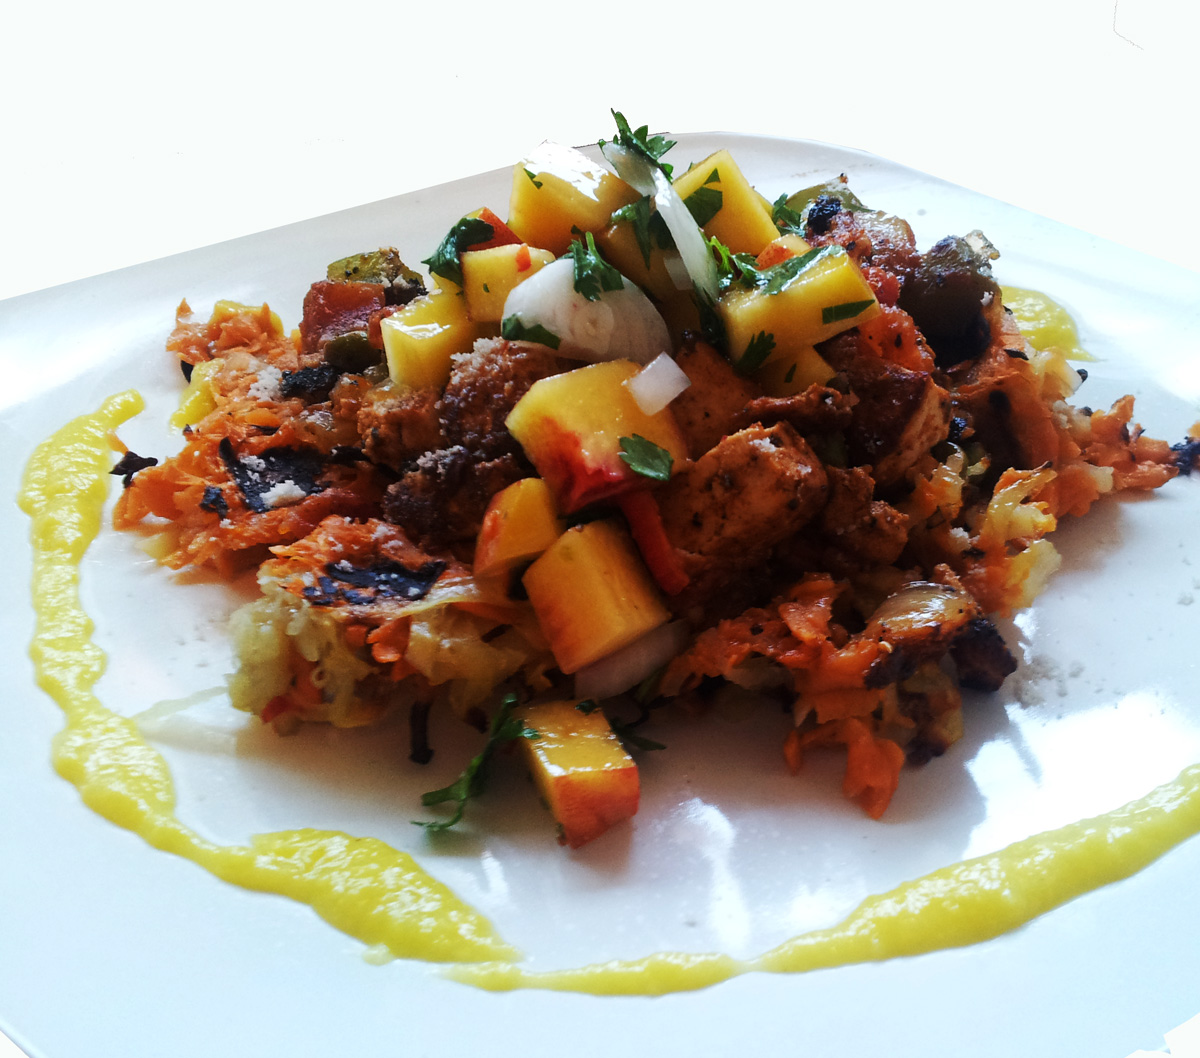 ... Sweet Potato Hash Browns with Tofu Scramble, Peach Salsa & Fresh Corn